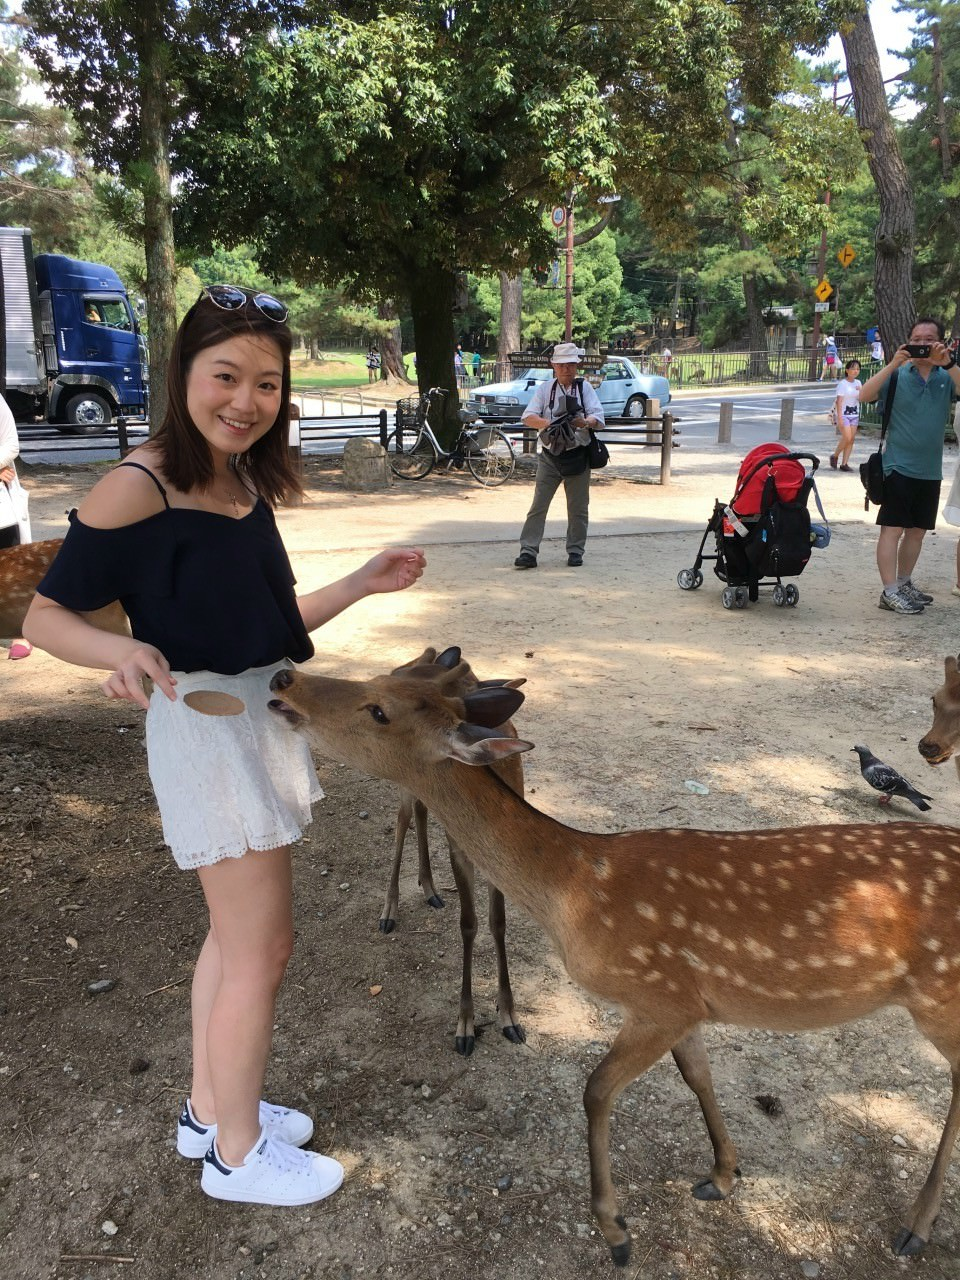 The deer was eager to eat our flying Senbei